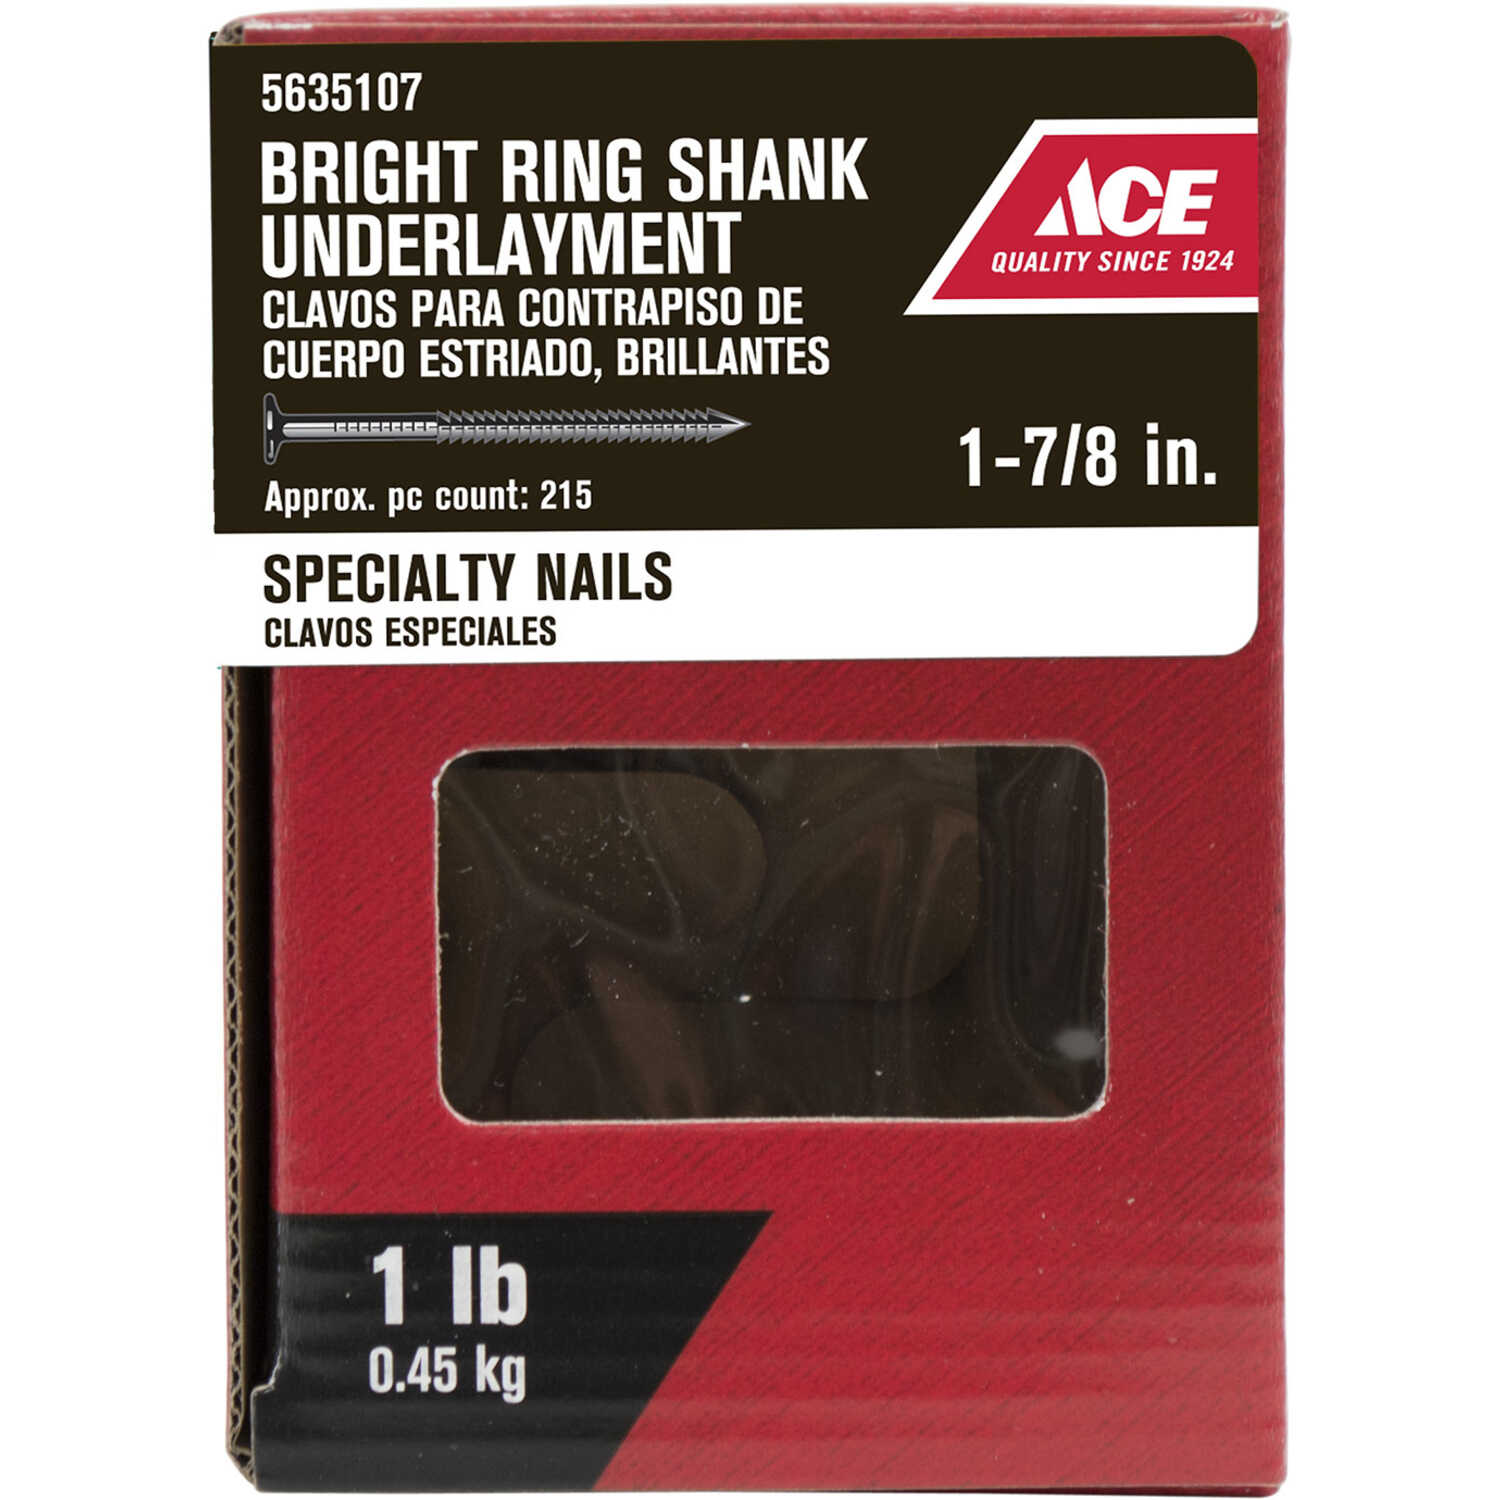 Ace  1-7/8  L Underlayment  Underlayment Nail  Annular Ring Shank  215  1 lb.